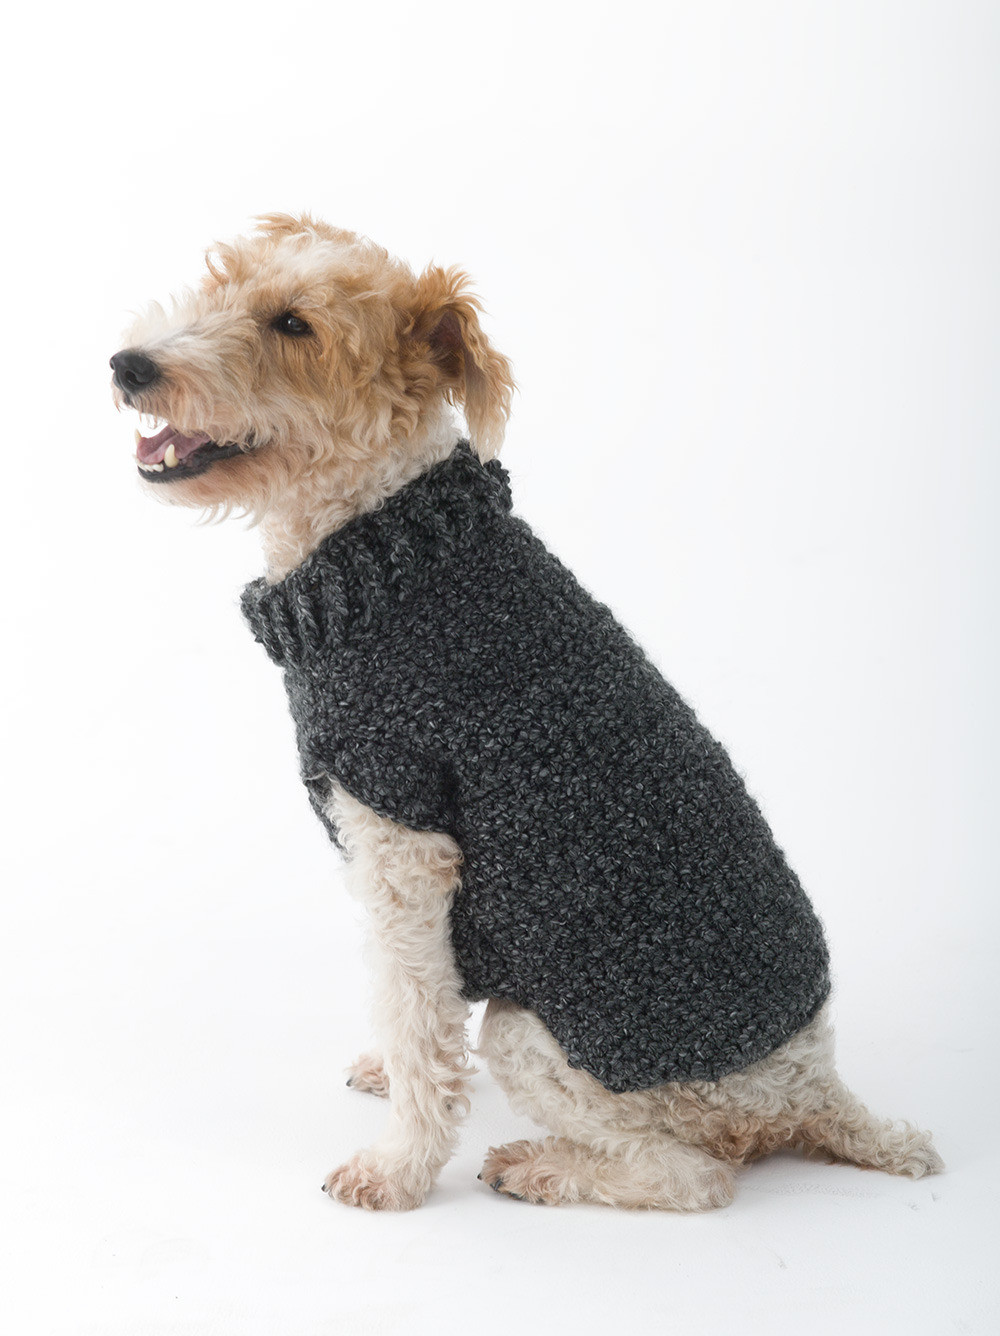 Dog Sweater Patterns Inspirational Poet Dog Sweater In Lion Brand Homespun L Of Unique 41 Photos Dog Sweater Patterns